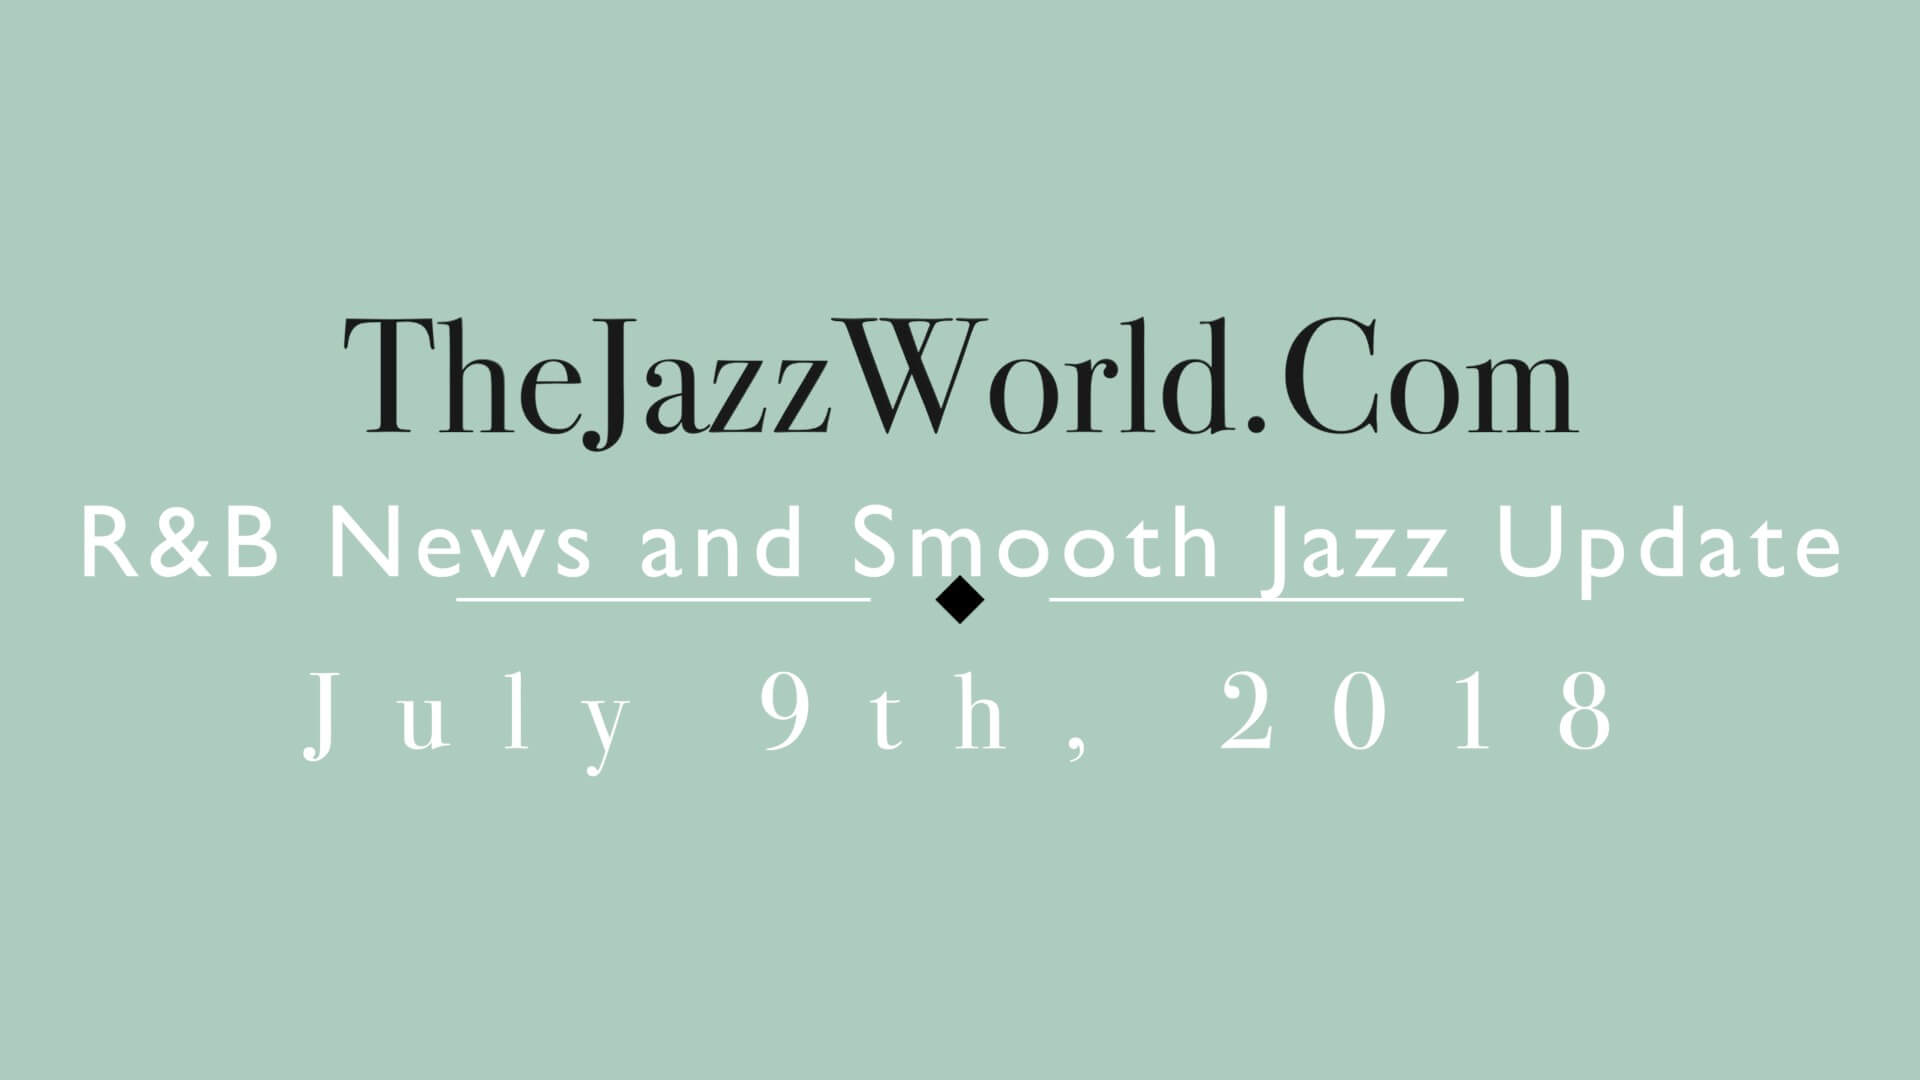 Latest R&B News and Smooth Jazz Update July 9th